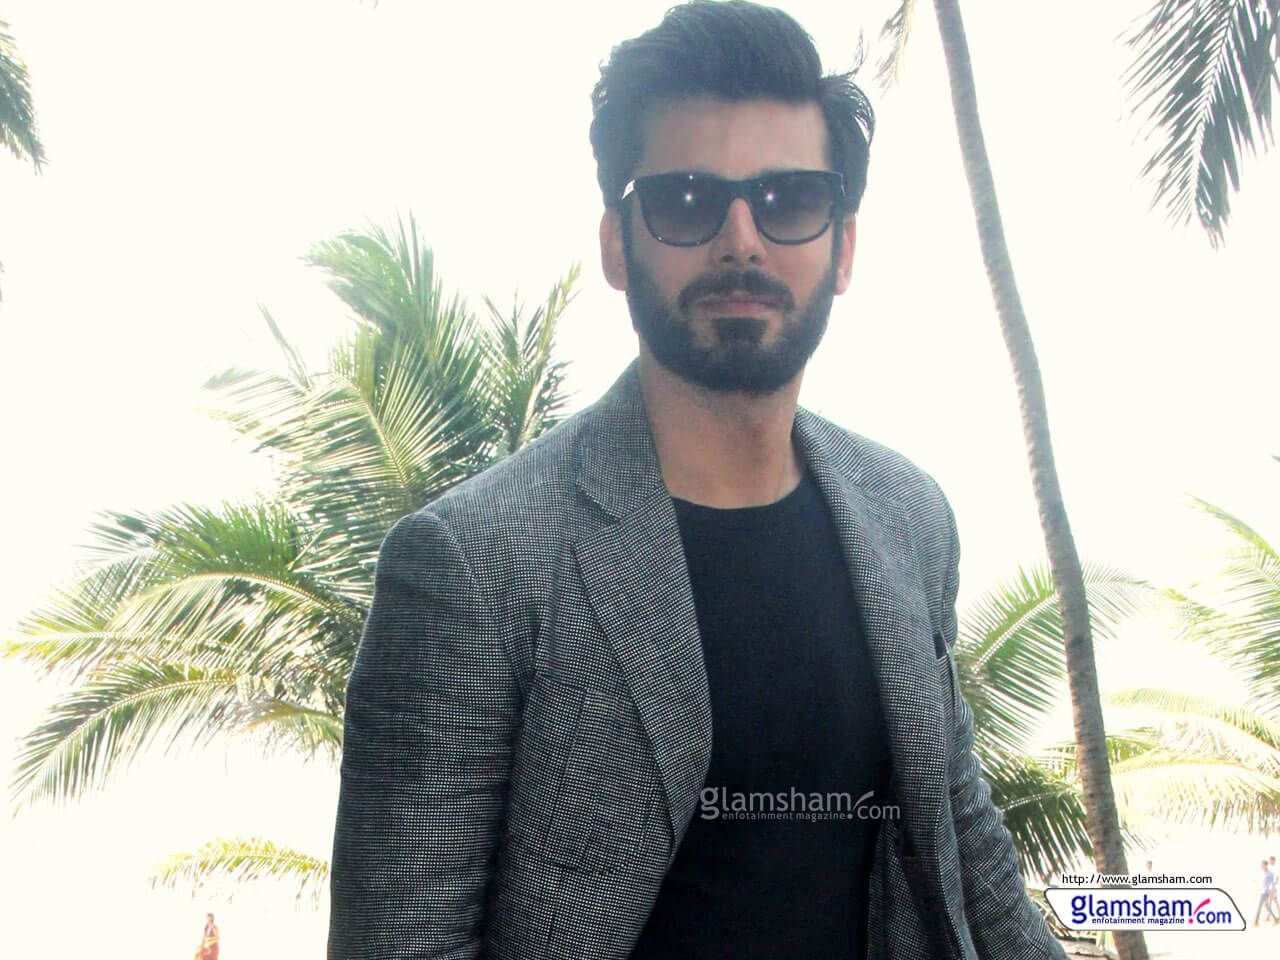 Fawad Khan Wife, Age, Images(photos), Height, Beard, Net Worth, Hairstyle, Family, Biography, Birthday, Daughter, Awards, Education, News, Instagram, Wiki, Facebook, Twitter, Imdb, Website (33)